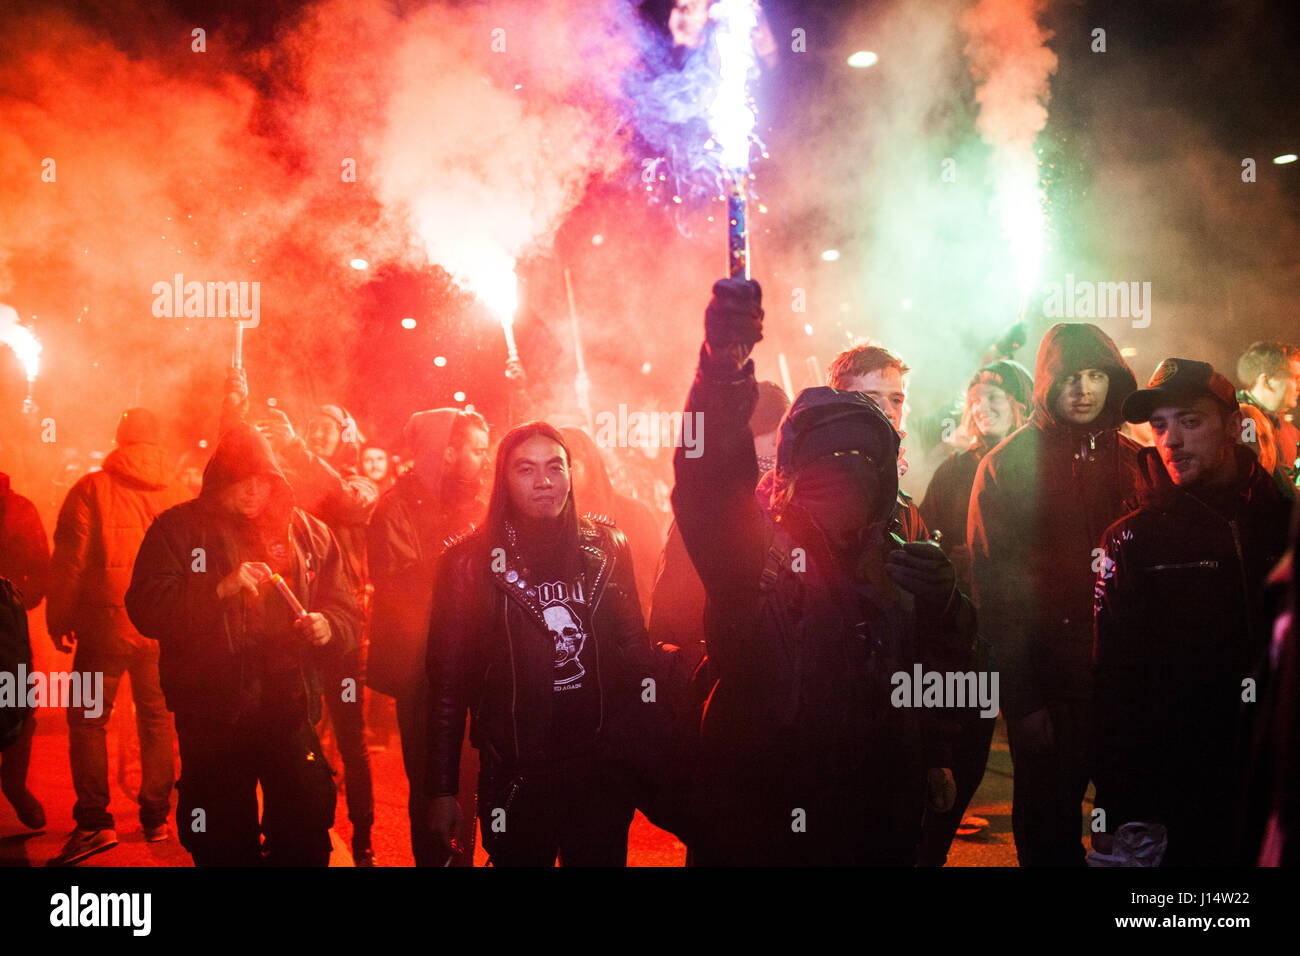 Left wing protesters light up flares during the anti-capitalistic march in the Nørrebro neighborhood in Copenhagen. - Stock Image